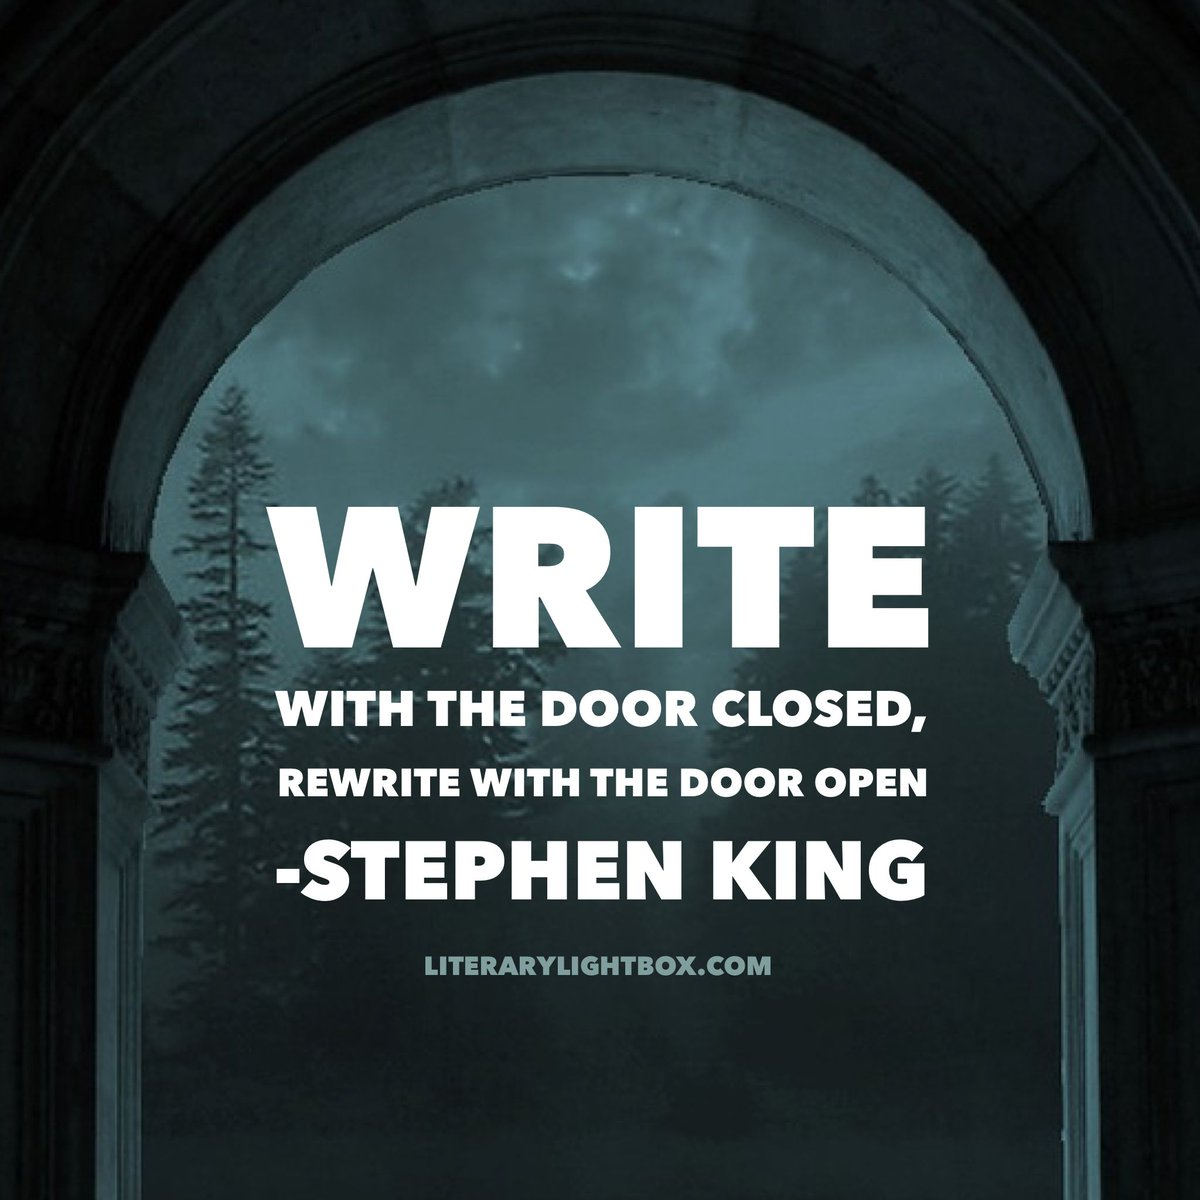 &quot;Write with the door closed, rewrite with the door open.&quot; -  Stephen King #writing #books #literarylightbox<br>http://pic.twitter.com/LrmmGM7oJp